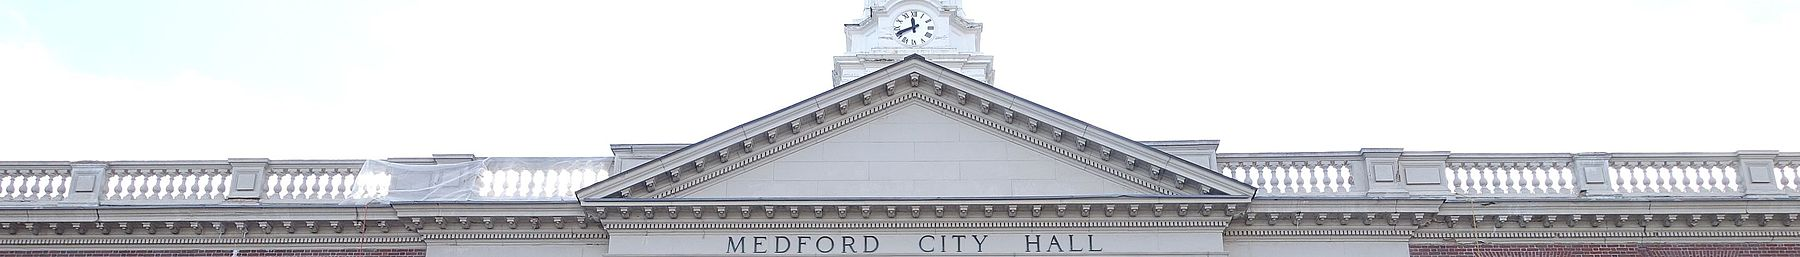 WV banner Medford Massachusetts City hall.jpg